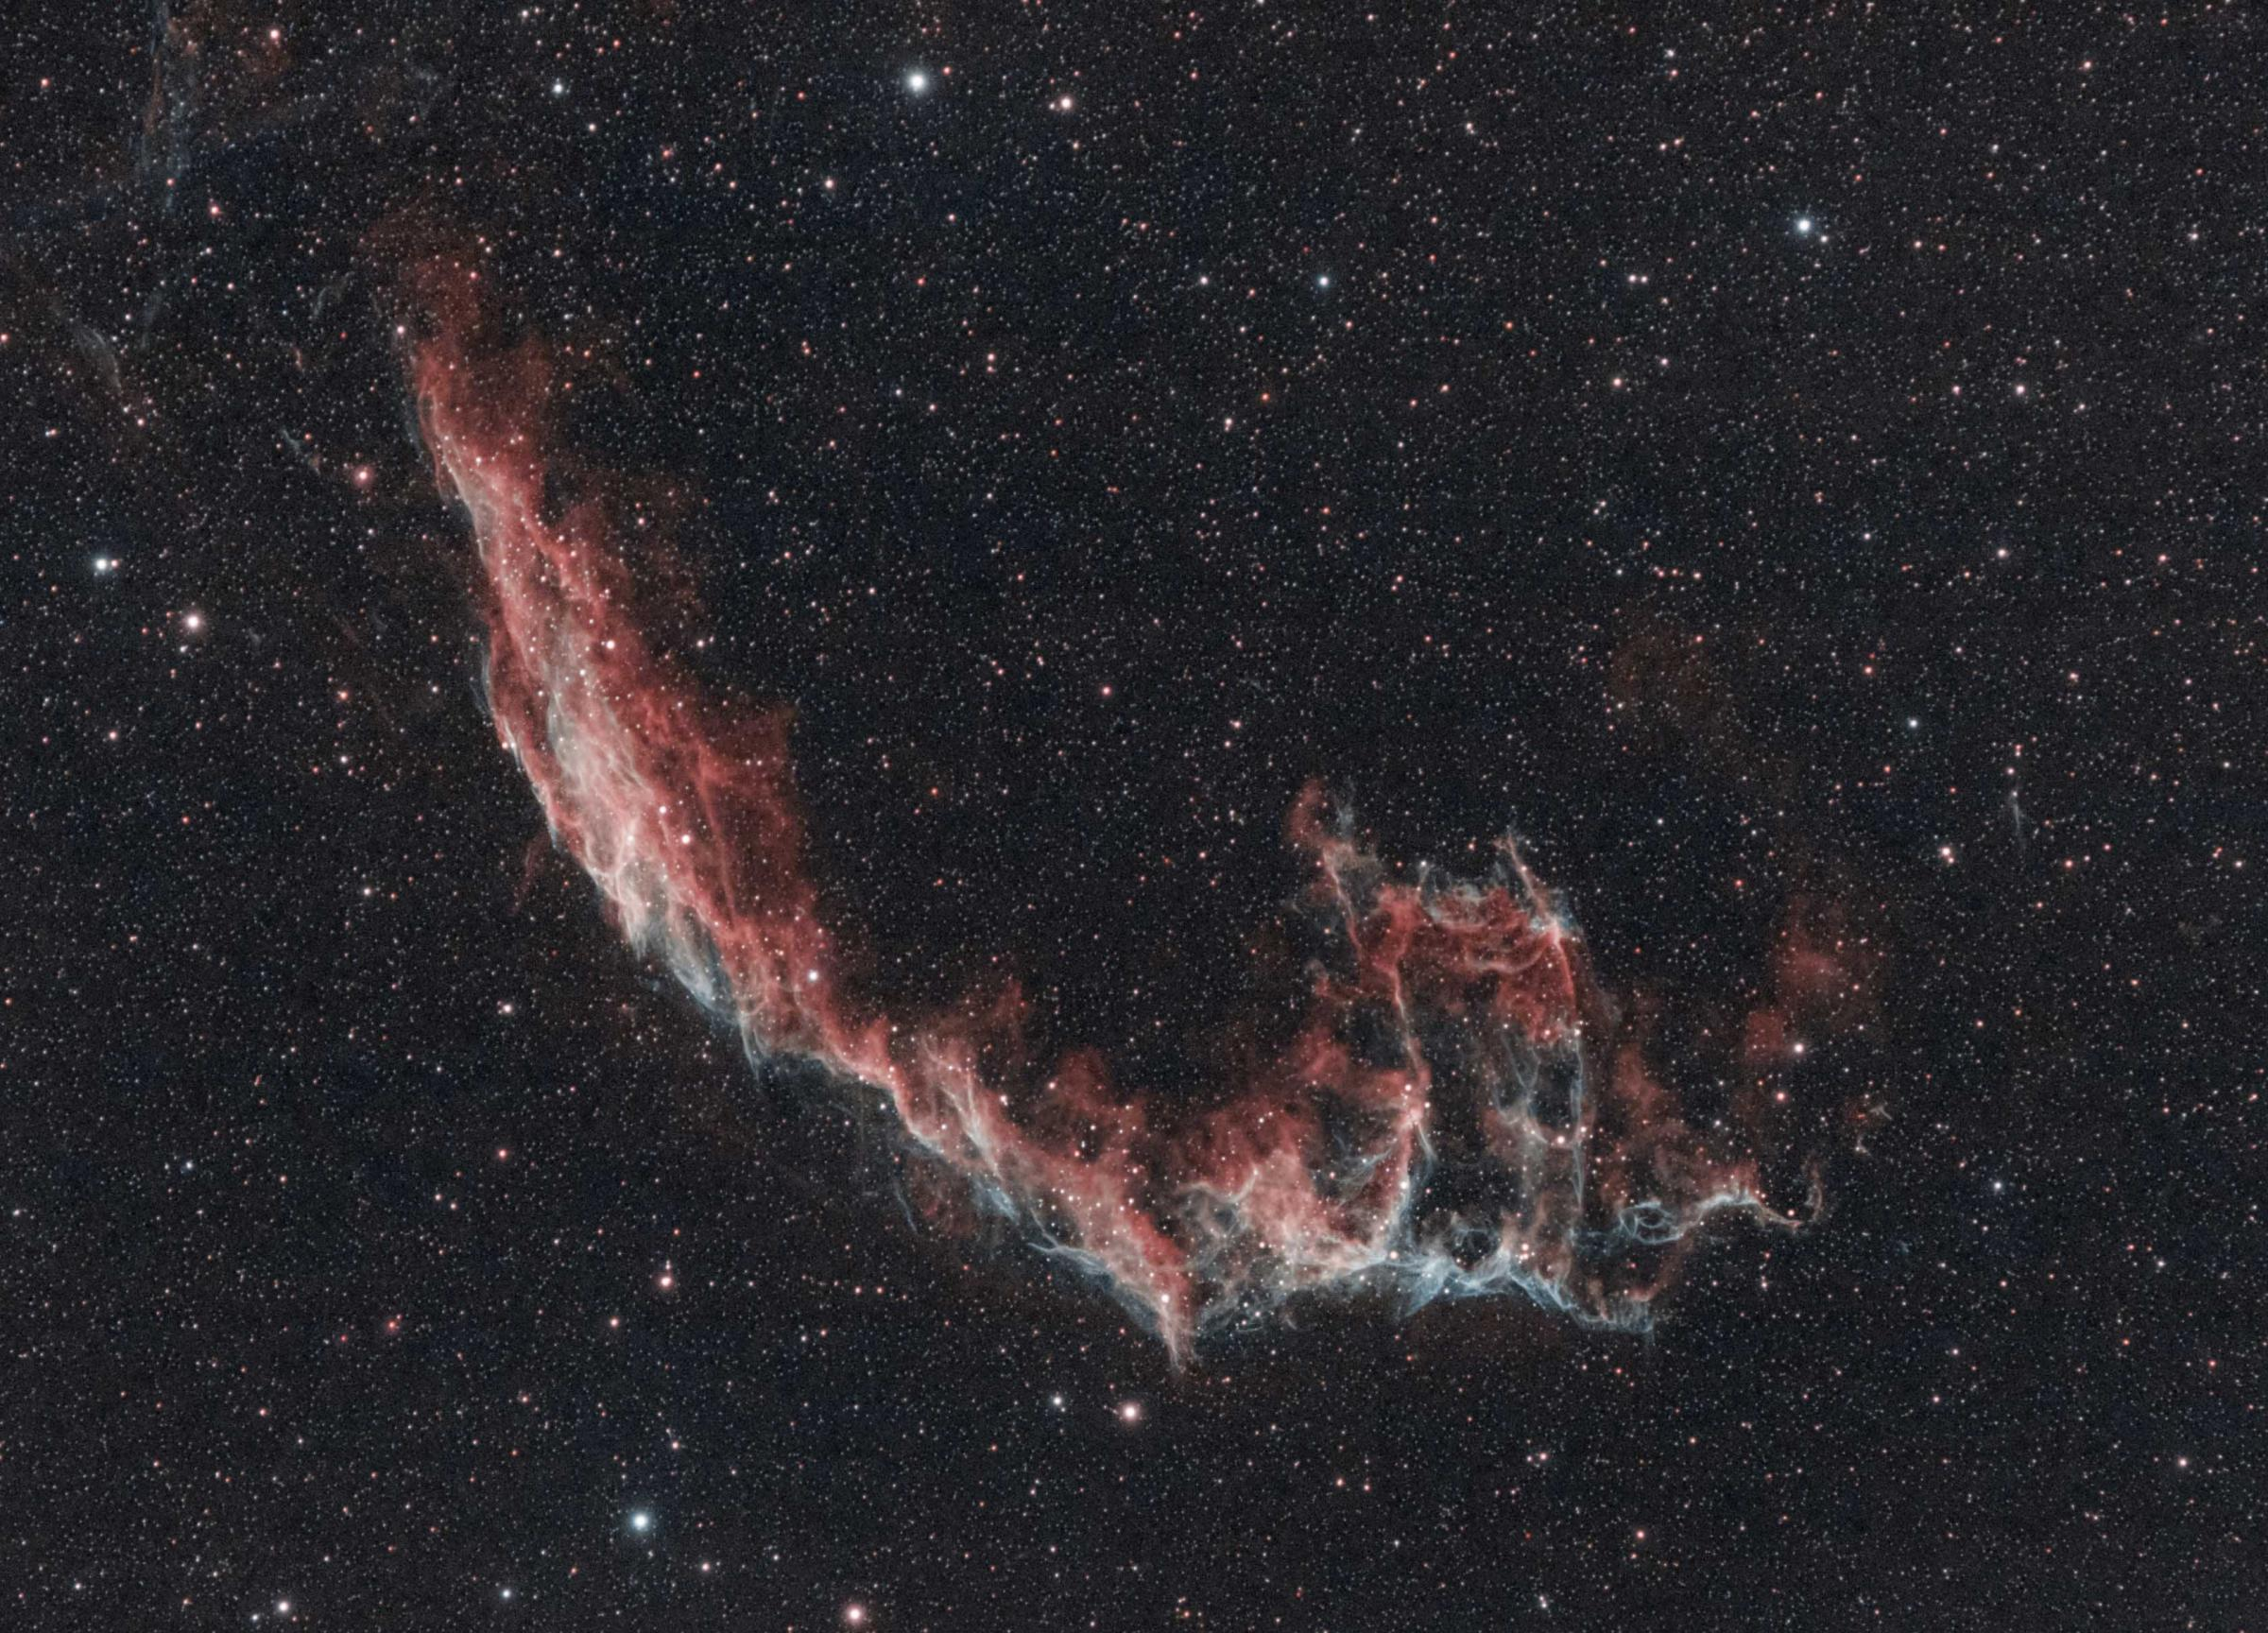 The Veil Nebula, a huge, feathery cloud of heated gas and dust in the constellation Cygnus - pictured by 16-year-old Scottish astro-photographer Helena Cochrane   -  - Space race is on for these three women involved in Big Bang festival